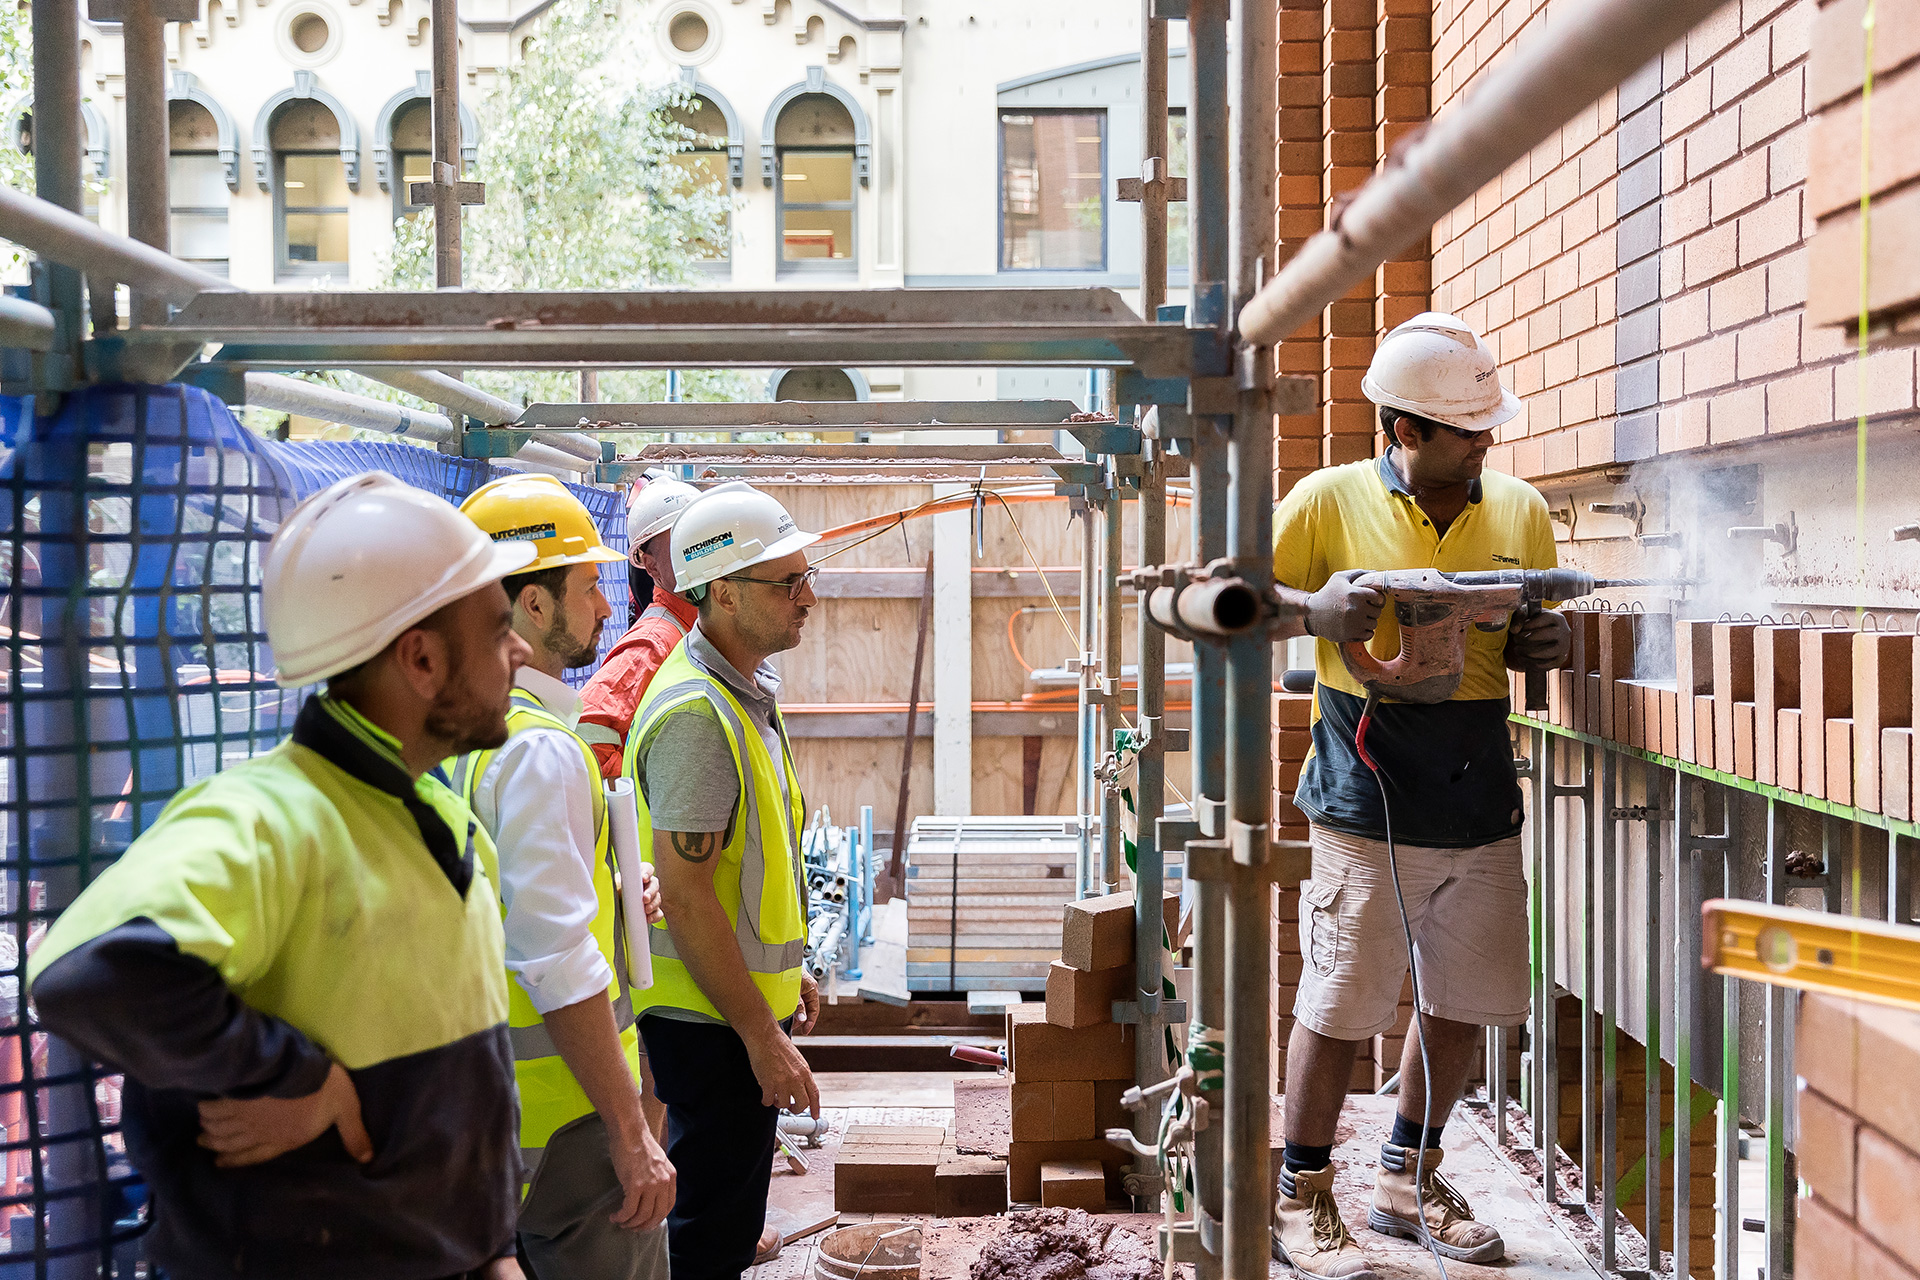 The team behind the cutting-edge brickwork | Arc |Koichi Takada Architects | Sydney | STIRworld